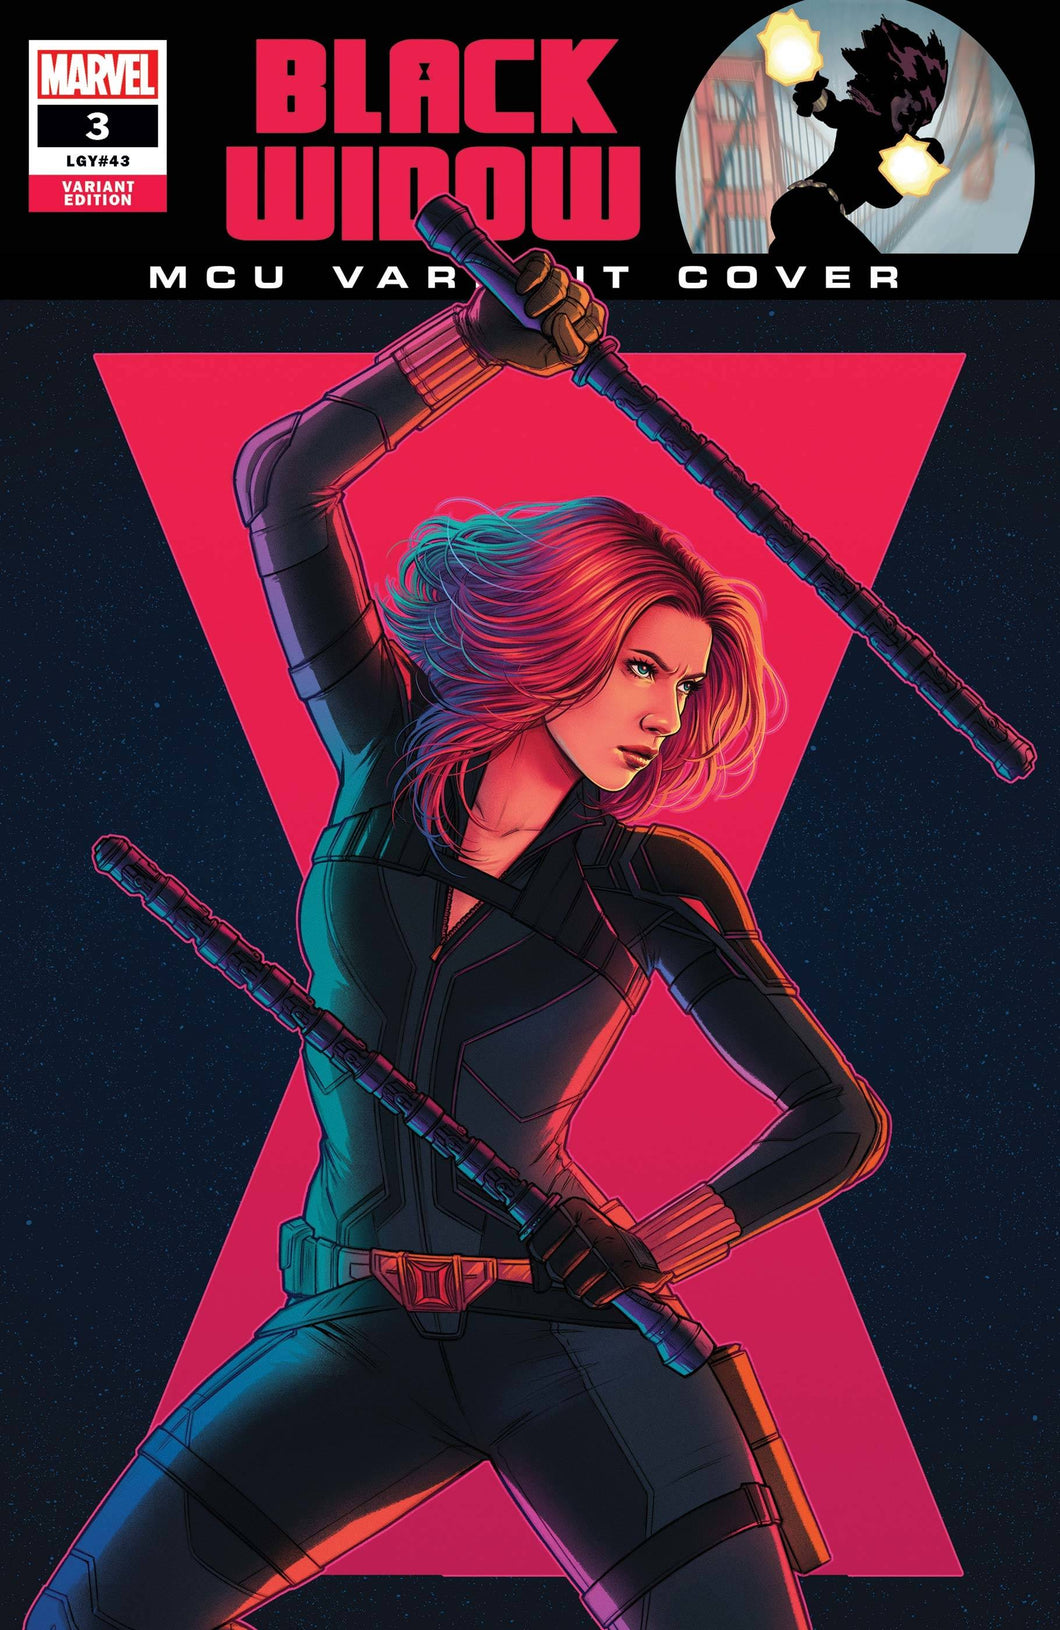 BLACK WIDOW #3 BARTEL MCU VARIANT